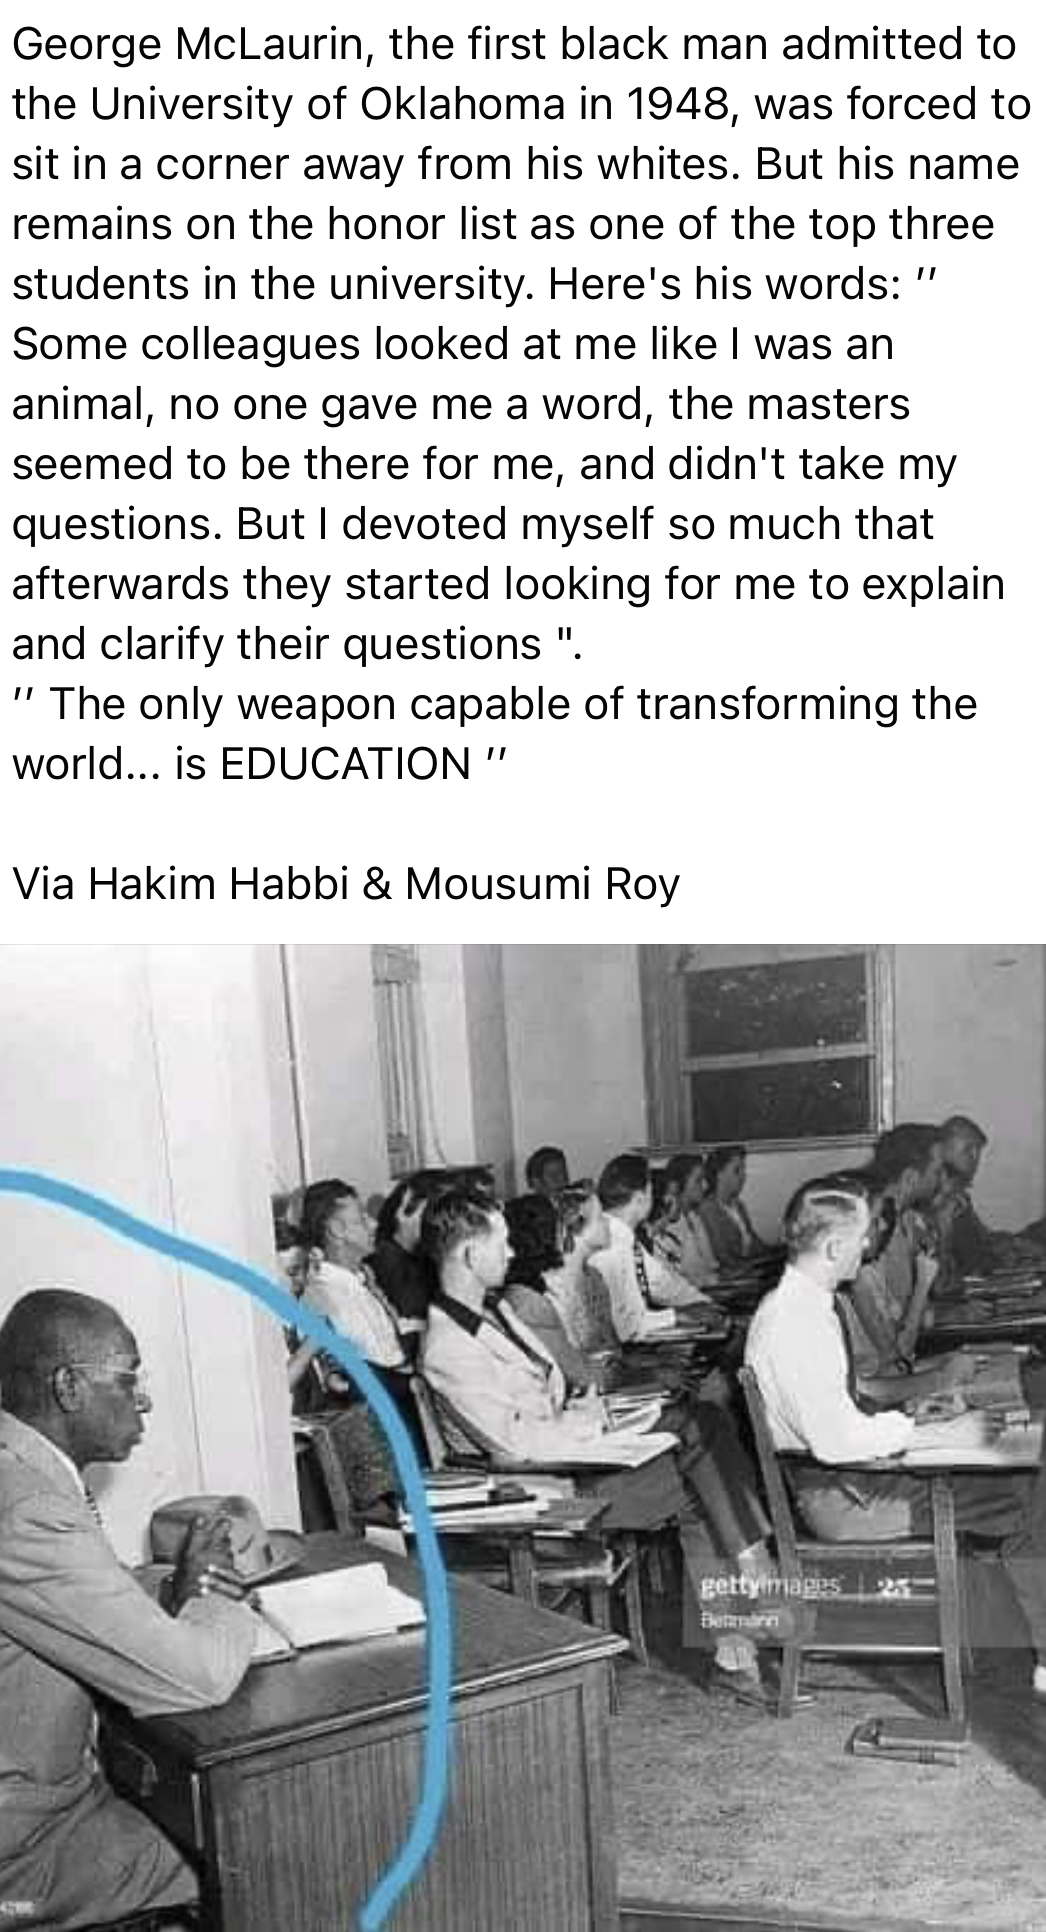 """George McLaurin, the first black man admitted to the University of Oklahoma in 1948, was forced to sit in a corner away from his whites. But his name remains on the honor list as one of the top three students in the university. Here's his words: Some colleagues looked at me like 